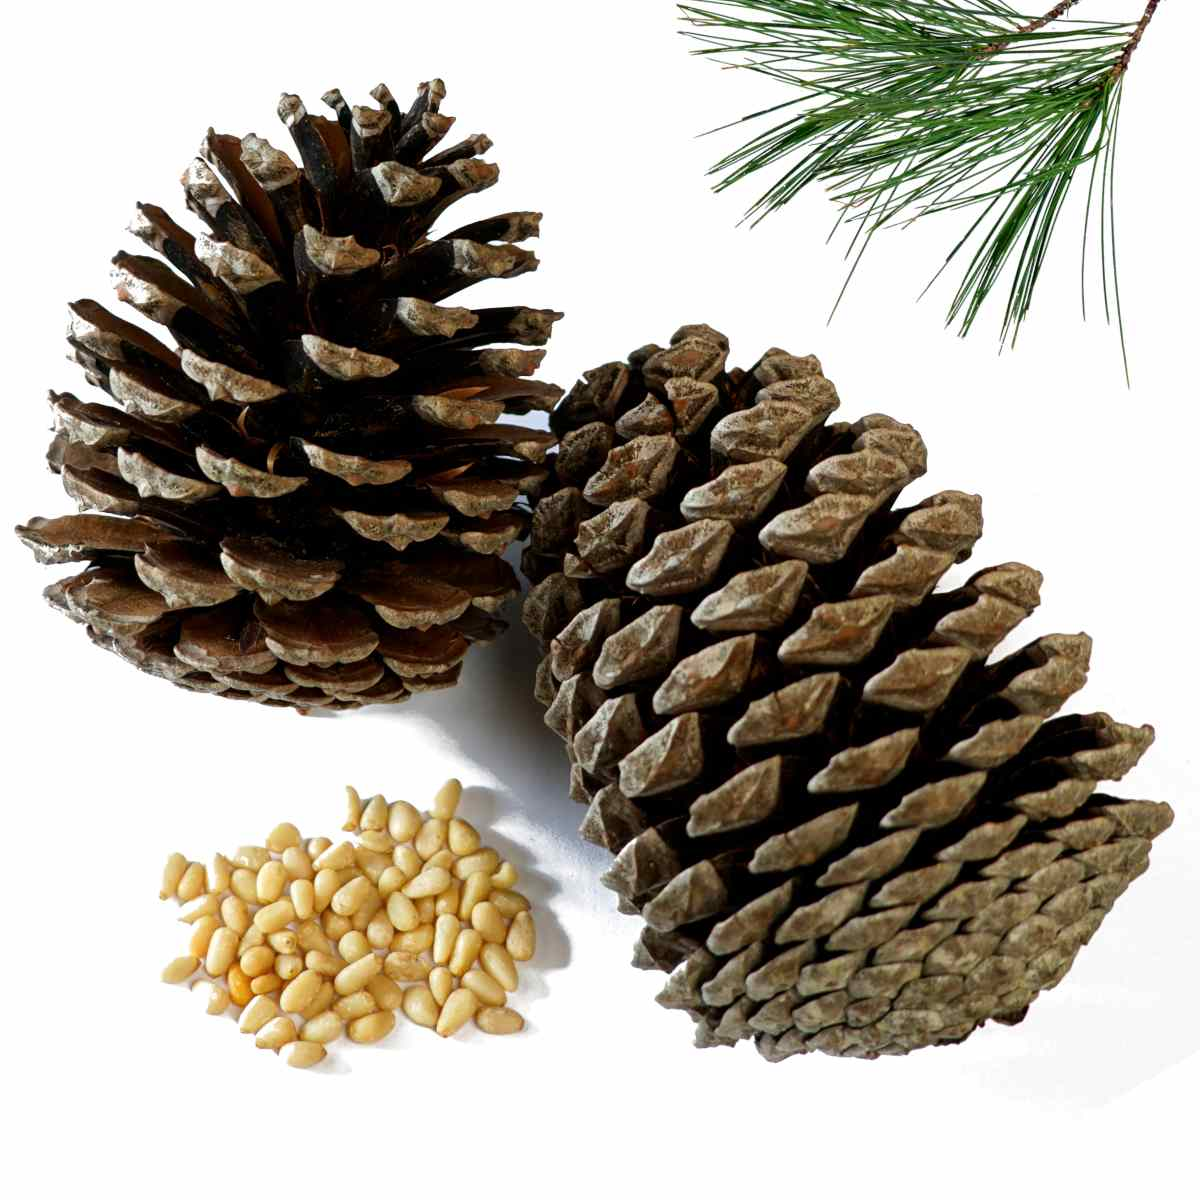 Pine tree branches, cones and fruit pips are healthy for the body.